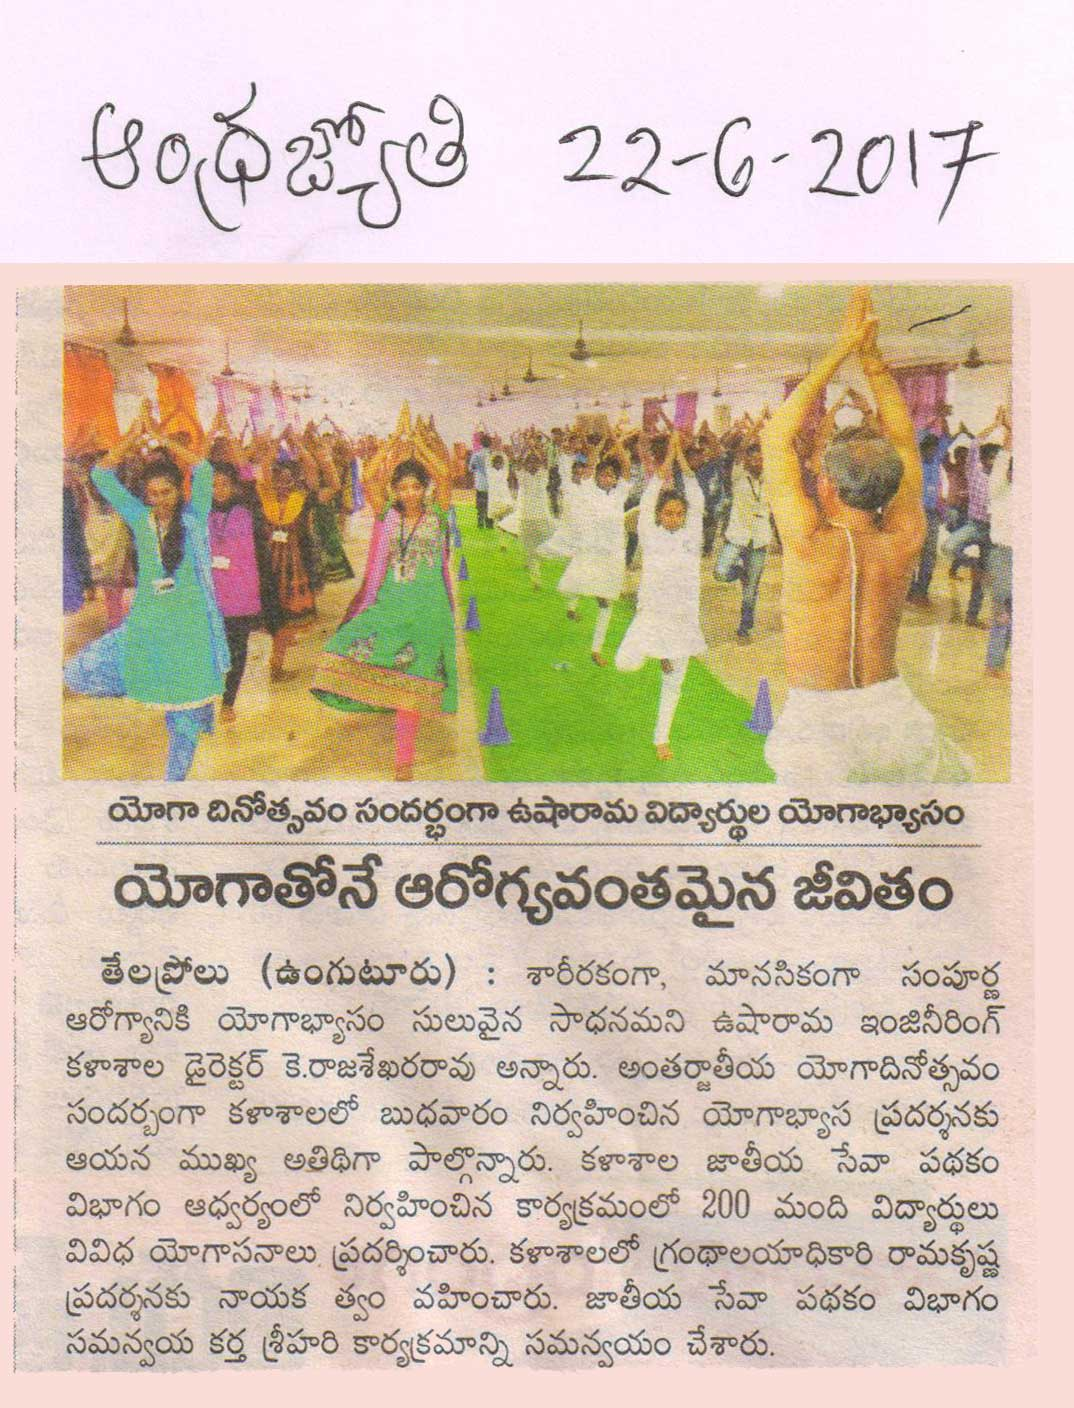 andhrajyothi international yoga day 2017 paper clipping